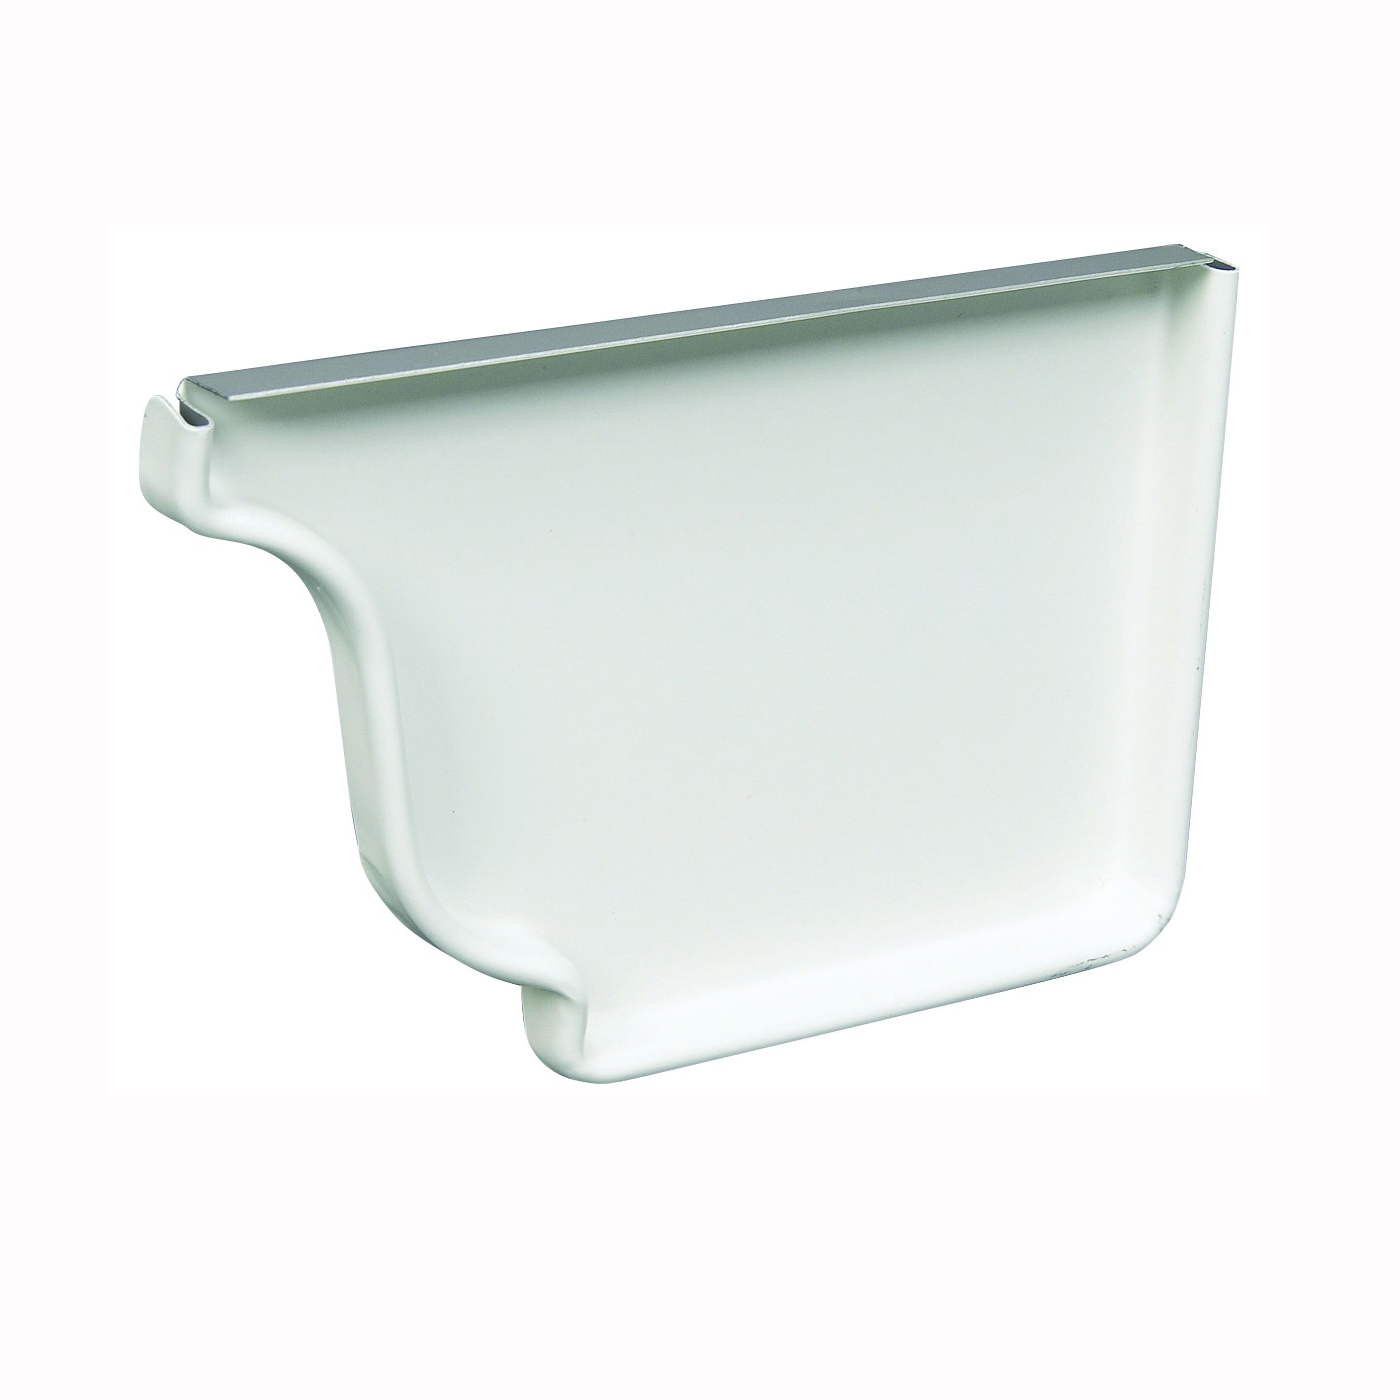 Picture of Amerimax 27006 Gutter End Cap, 5 in L, Vinyl, White, For: 5 in K-Style Gutter System